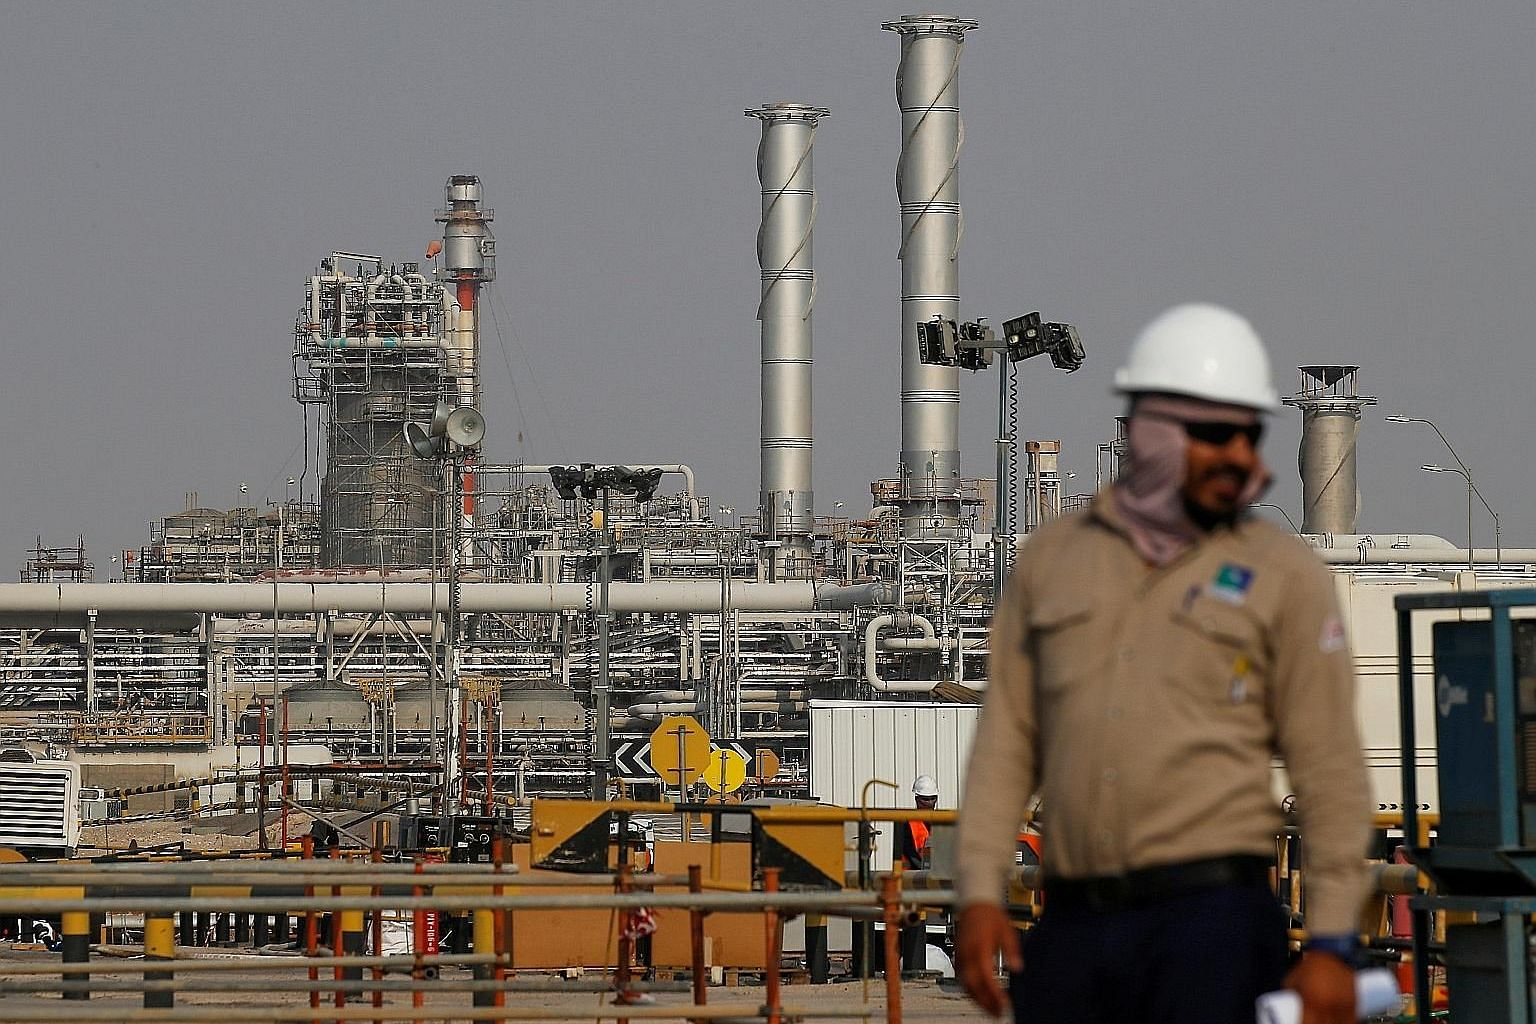 A Saudi Aramco oil facility in Abqaiq, Saudi Arabia. The world's most profitable firm's float is the centrepiece of Saudi Crown Prince Mohammed bin Salman's plan to diversify the top crude exporter away from oil.